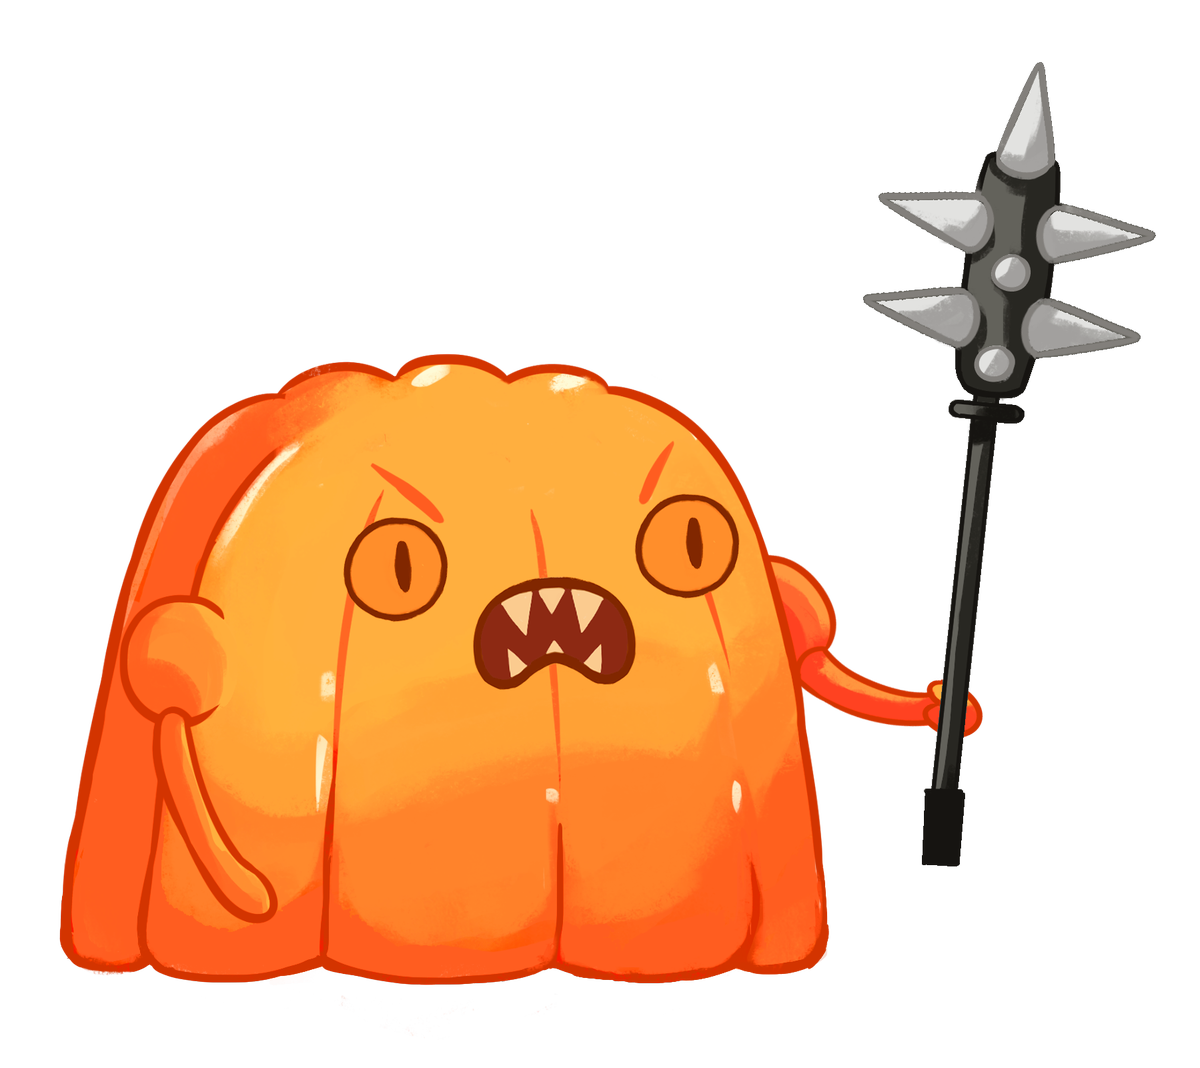 Trust no jellies: their wiggle are the start of a whole revolution! #indiedev #indiegame #gamedev #unity3d <br>http://pic.twitter.com/gAO3fWxVOi